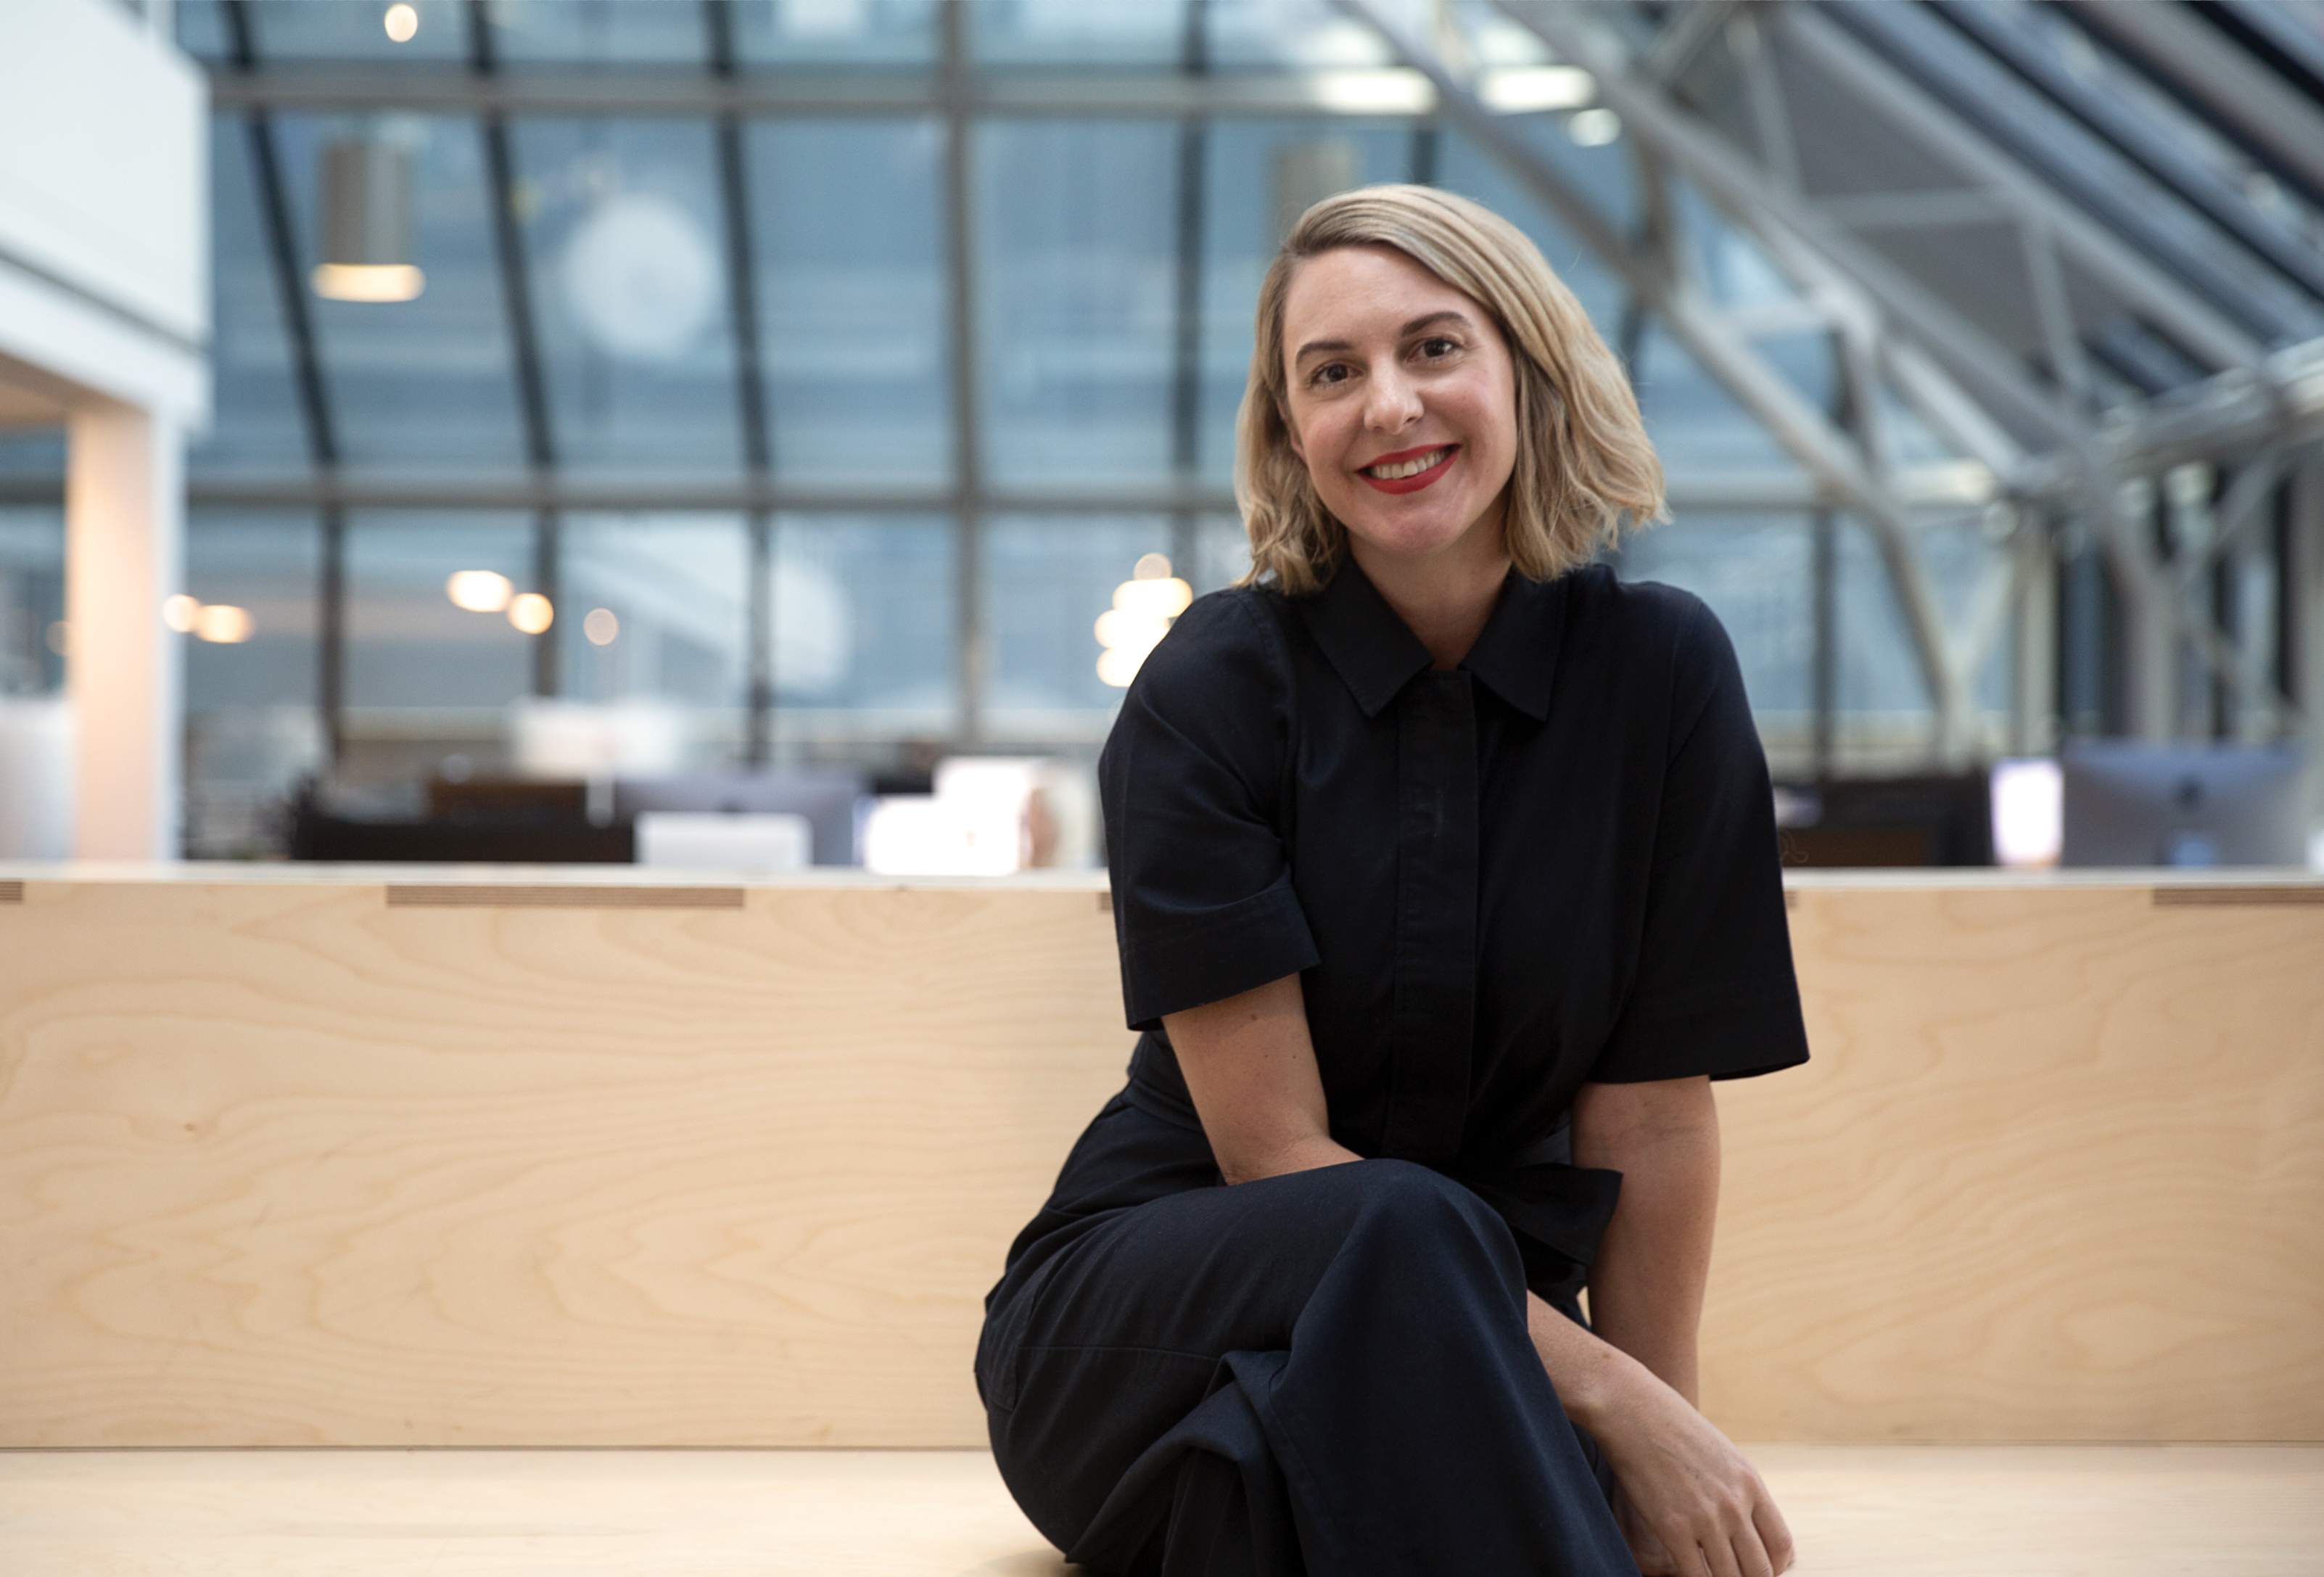 Former Anomaly New York CD Lea Egan joins Clemenger BBDO Melbourne as creative director